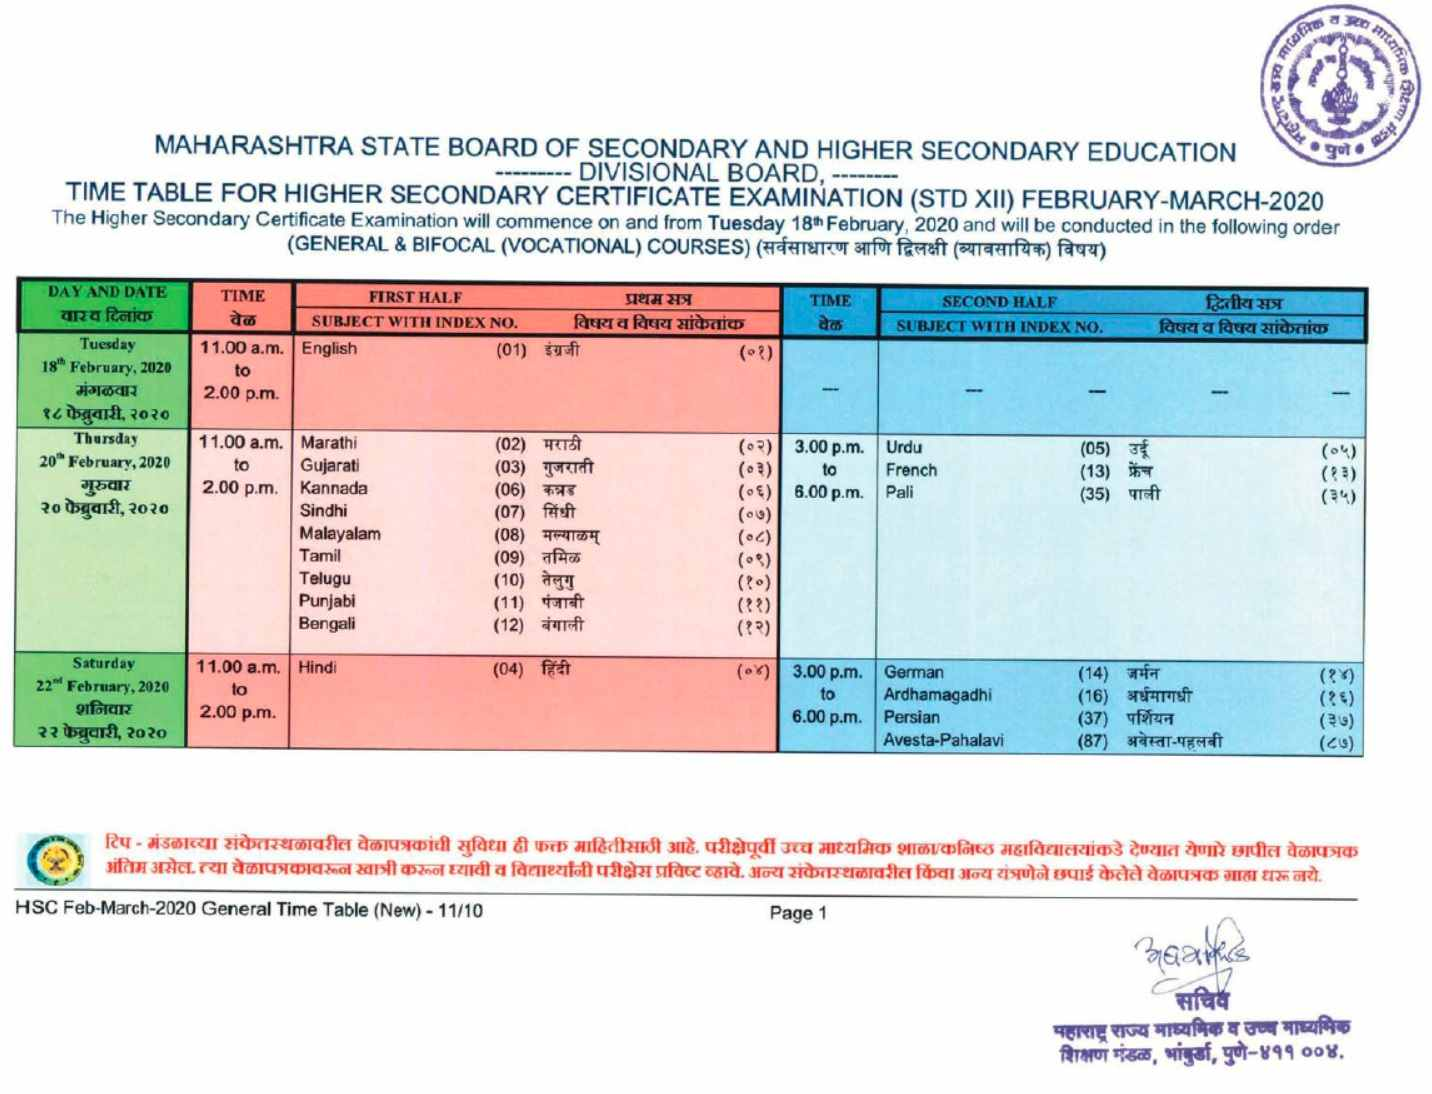 12th (HSC) Time Table for Maharashtra Board Exams 2020